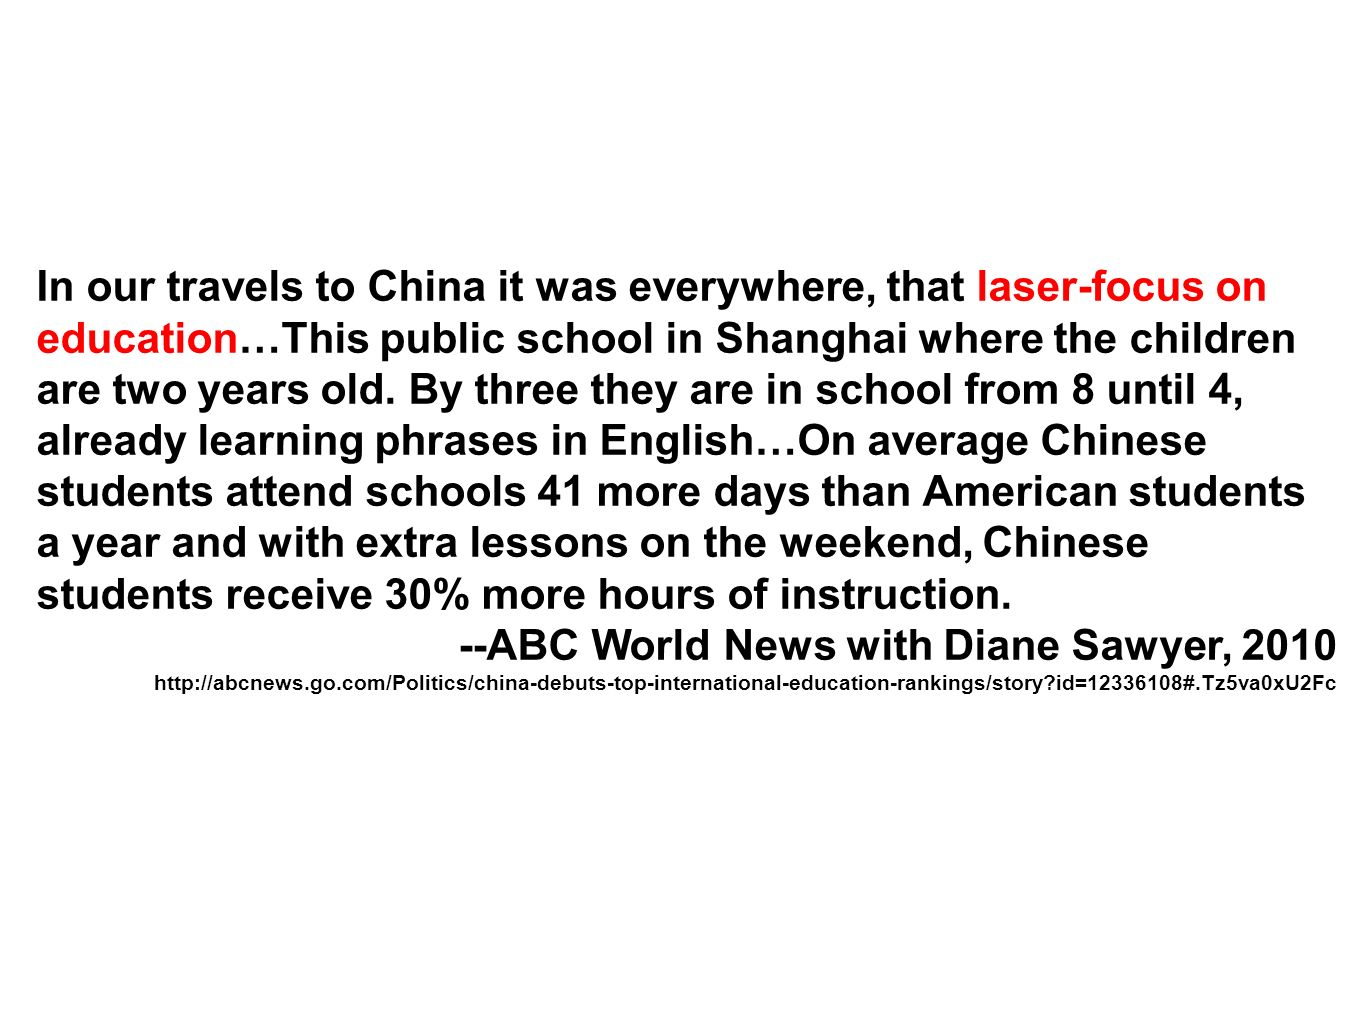 --ABC World News with Diane Sawyer, 2010